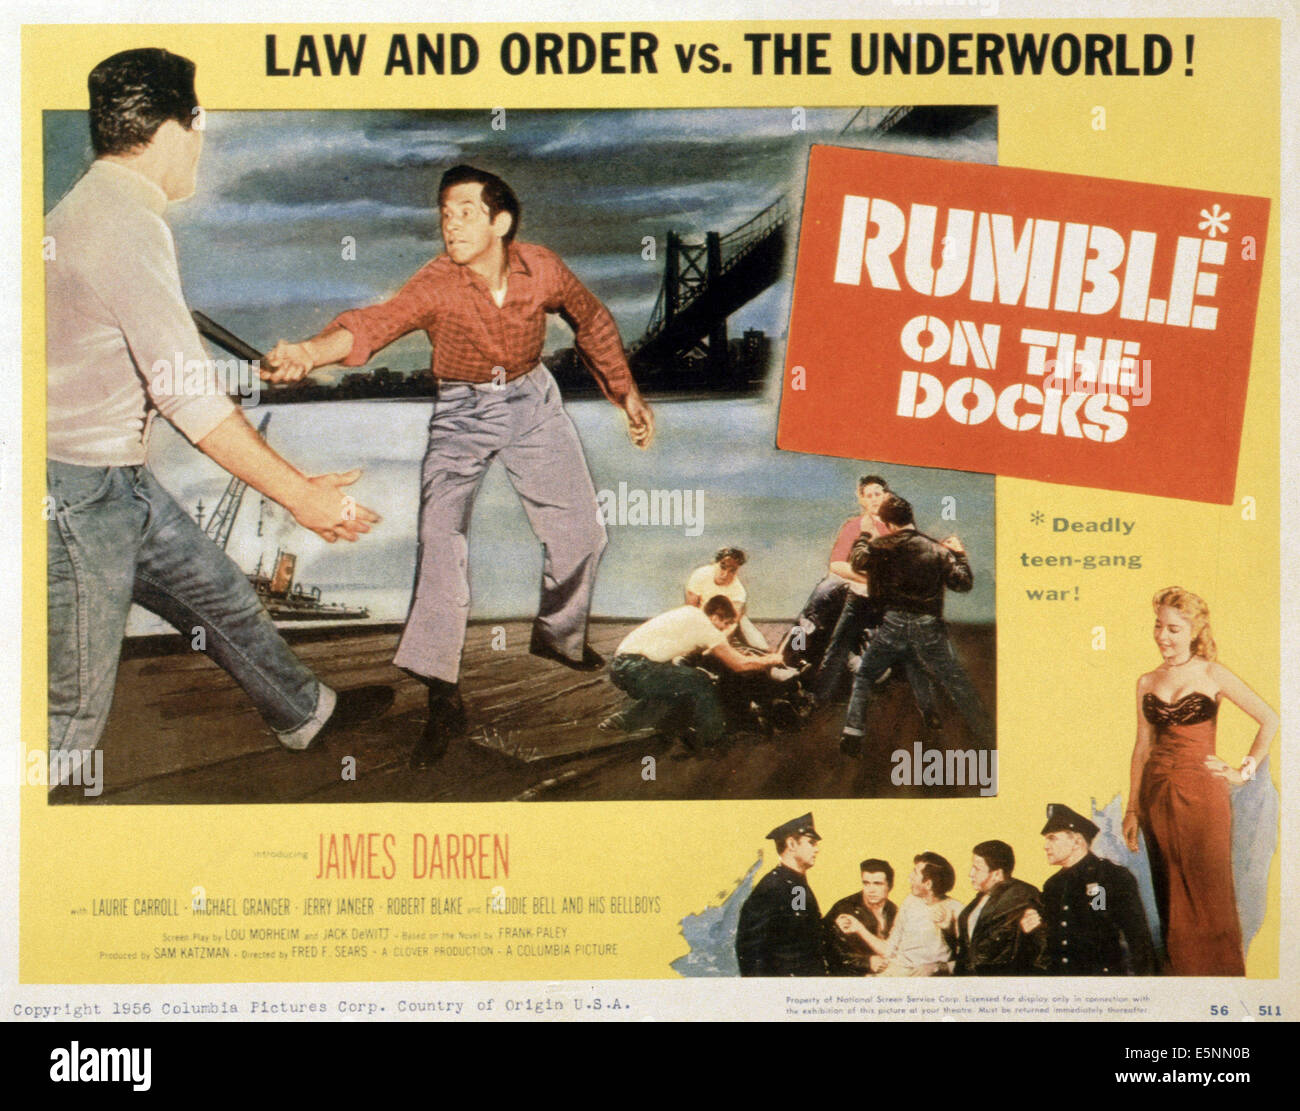 RUMBLE ON THE DOCKS, US poster, 1956 - Stock Image